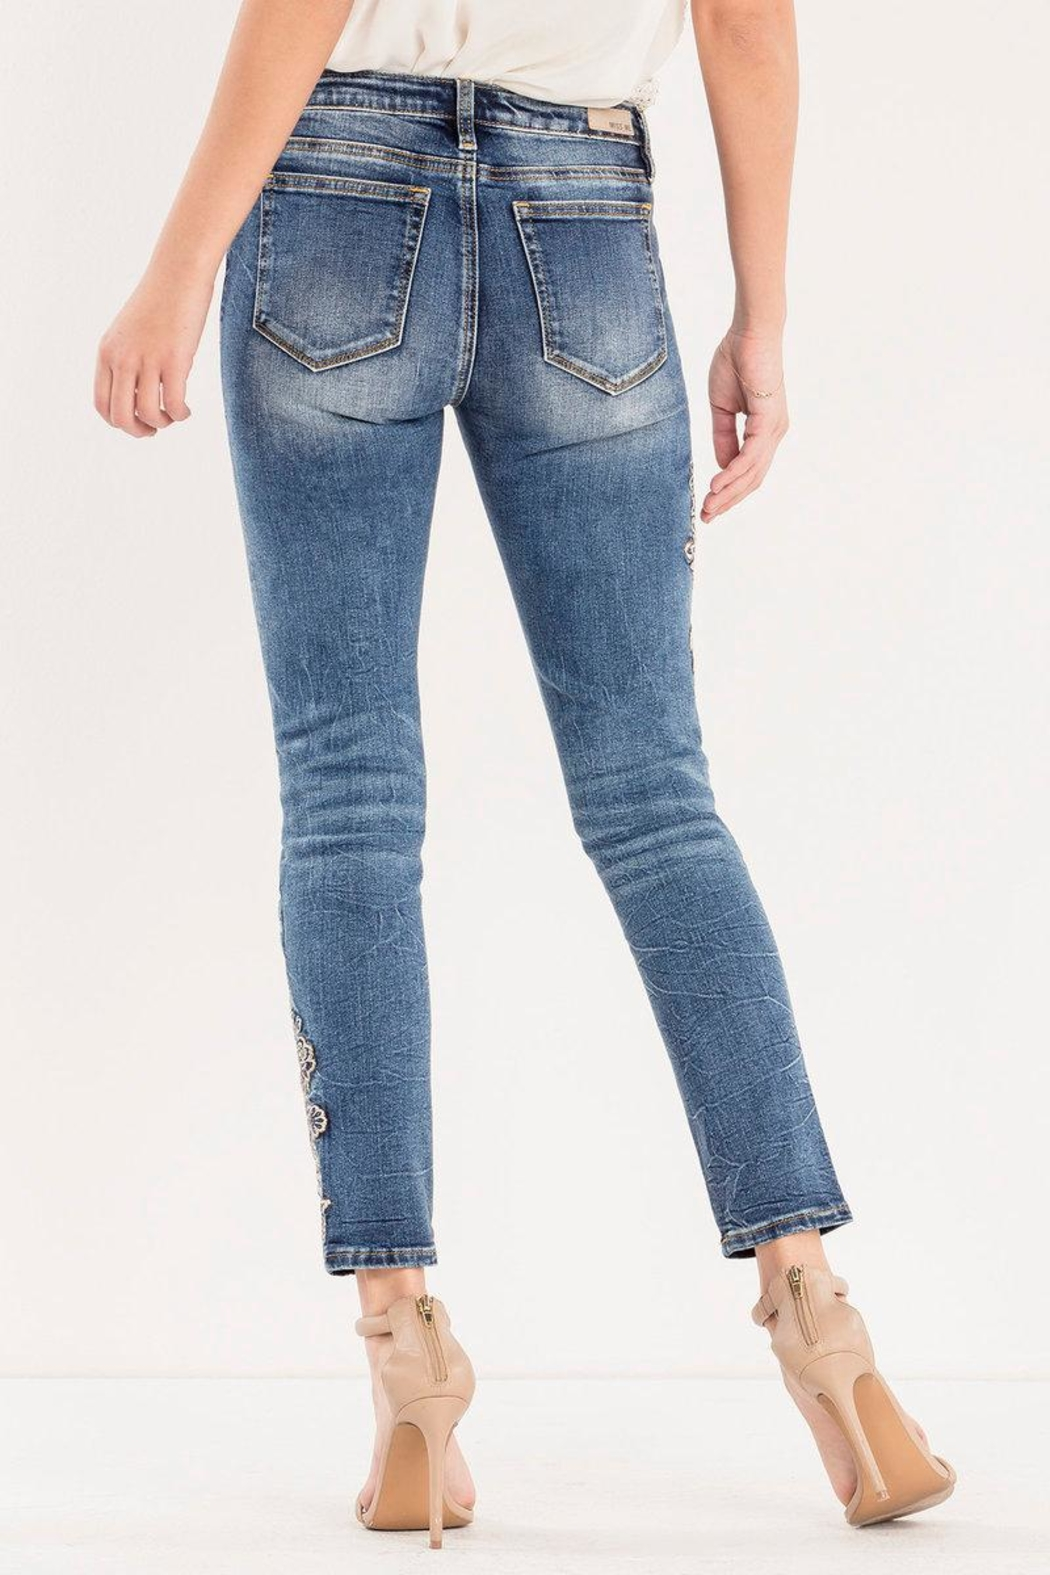 Miss Me Rose-Embroidered Midrise Ankle-Skinny - Side Cropped Image